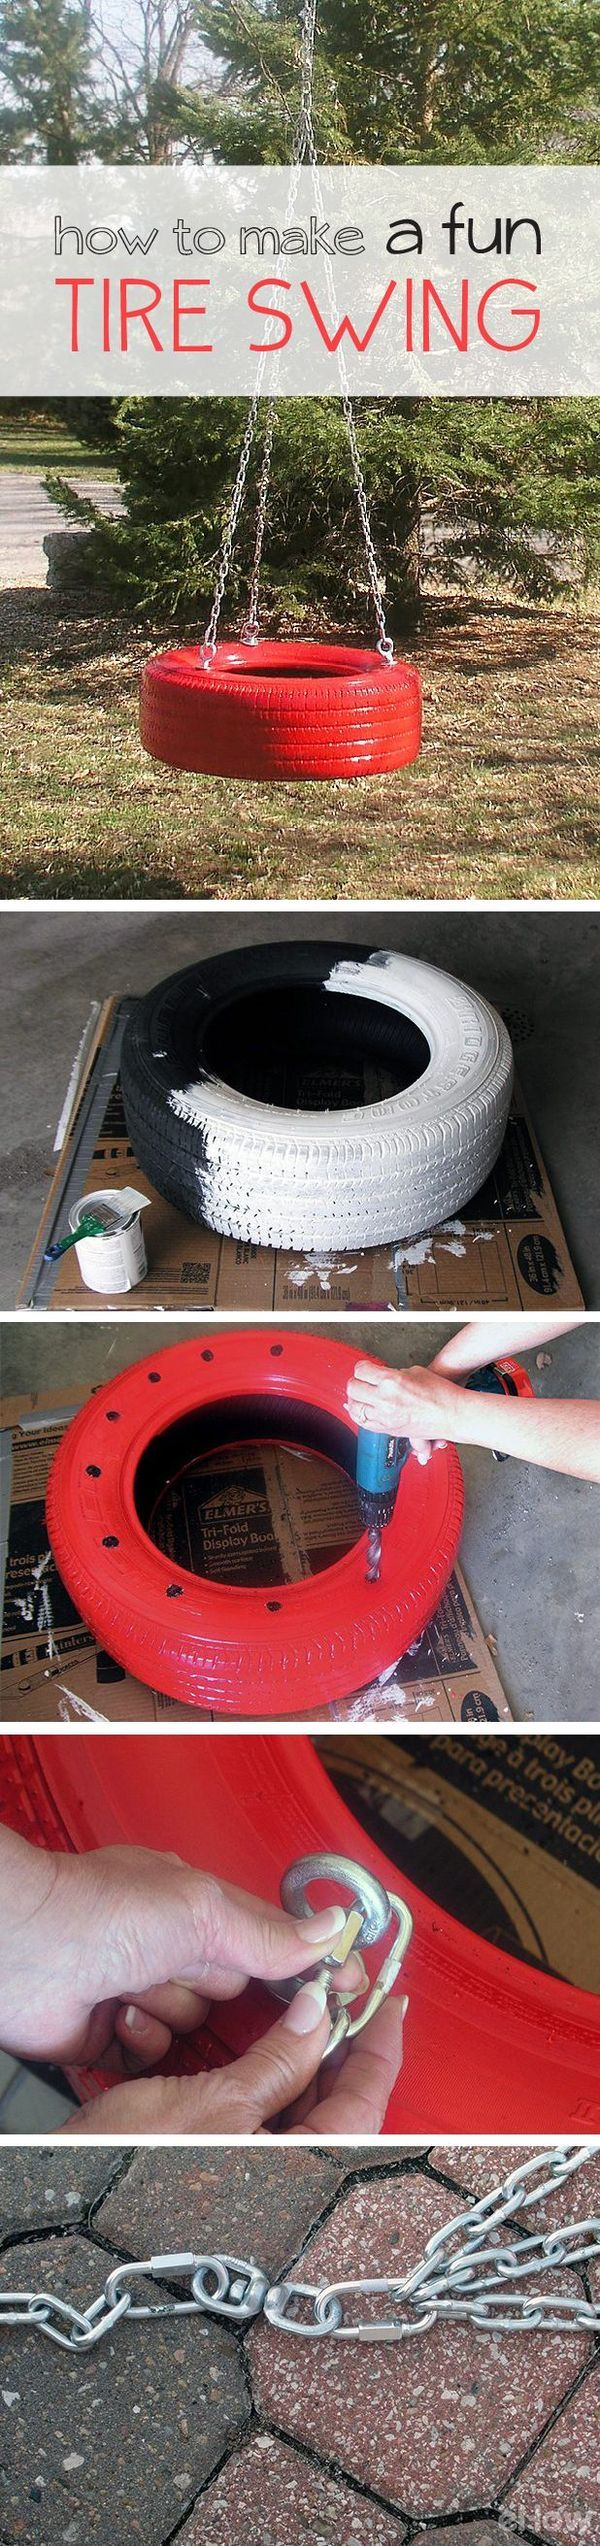 DIY your very own old-fashioned tire swing. This version of the timeless classic features a tire supported horizontally by three points of attachment and a swivel point that allows movement in multiple directions. Spend an afternoon assembling a tire swing and guarantee years of enjoyment for the children in your life. DIY instructions here: http://www.ehow.com/how_5264076_make-fun-tire-swing.html?utm_source=pinterest.com&utm_medium=referral&utm_content=inline&utm_campaign=fanpage